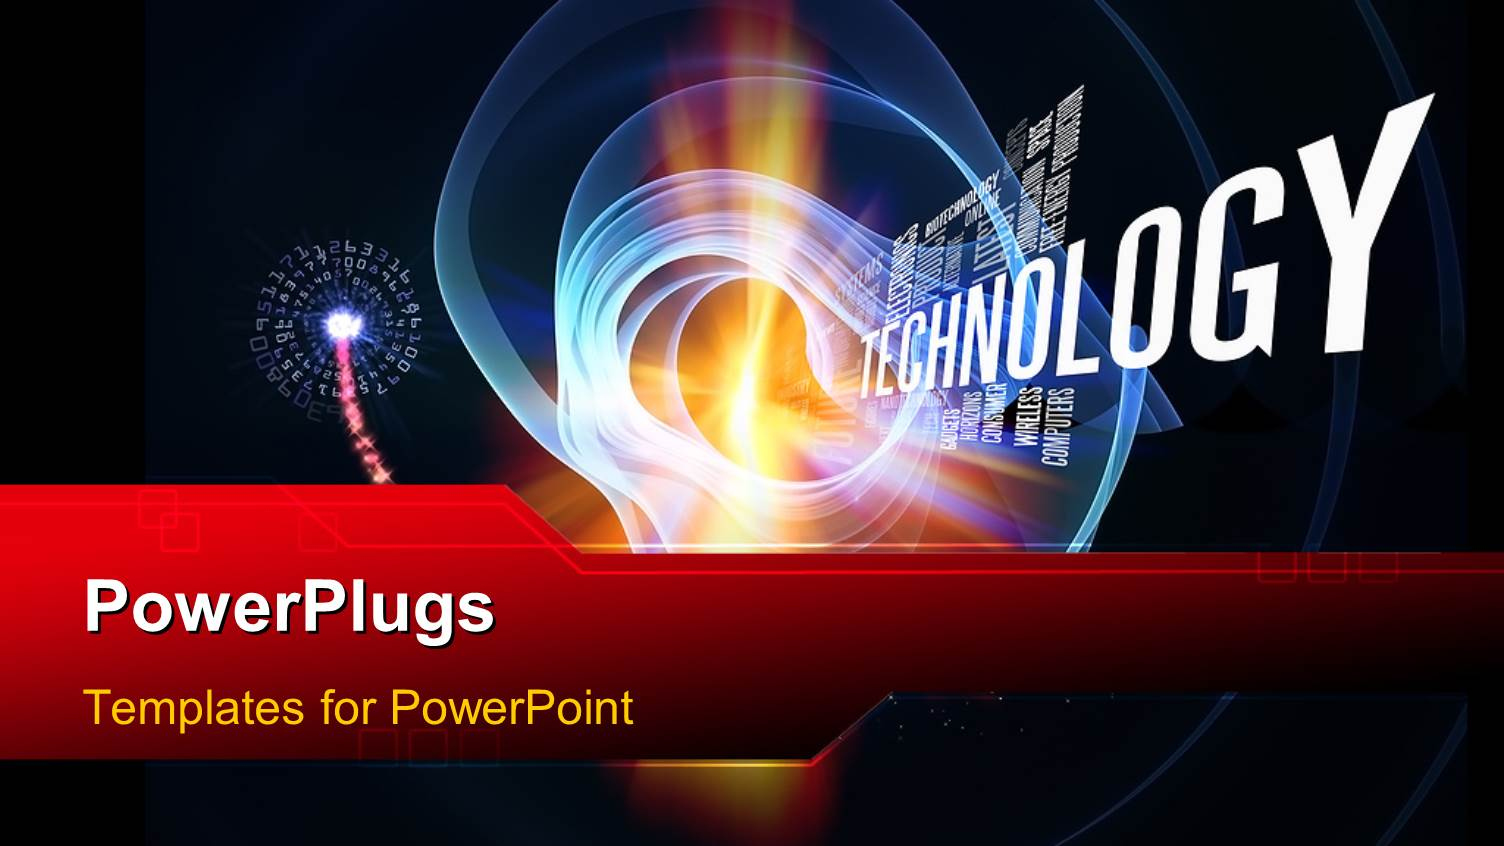 Powerpoint template technology words and abstract forms for Power plugs powerpoint templates